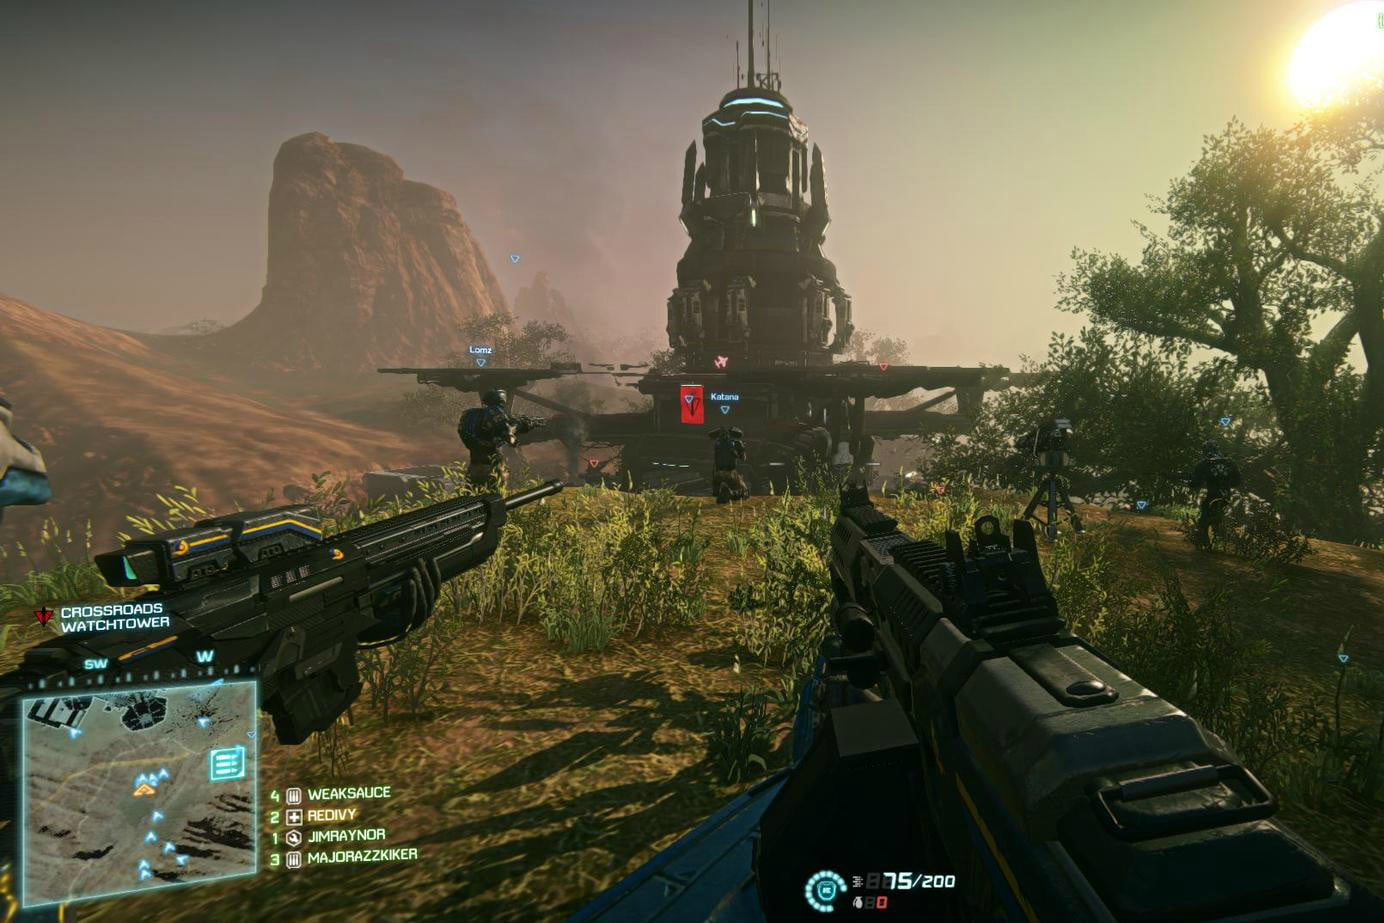 1 person shooter games free download